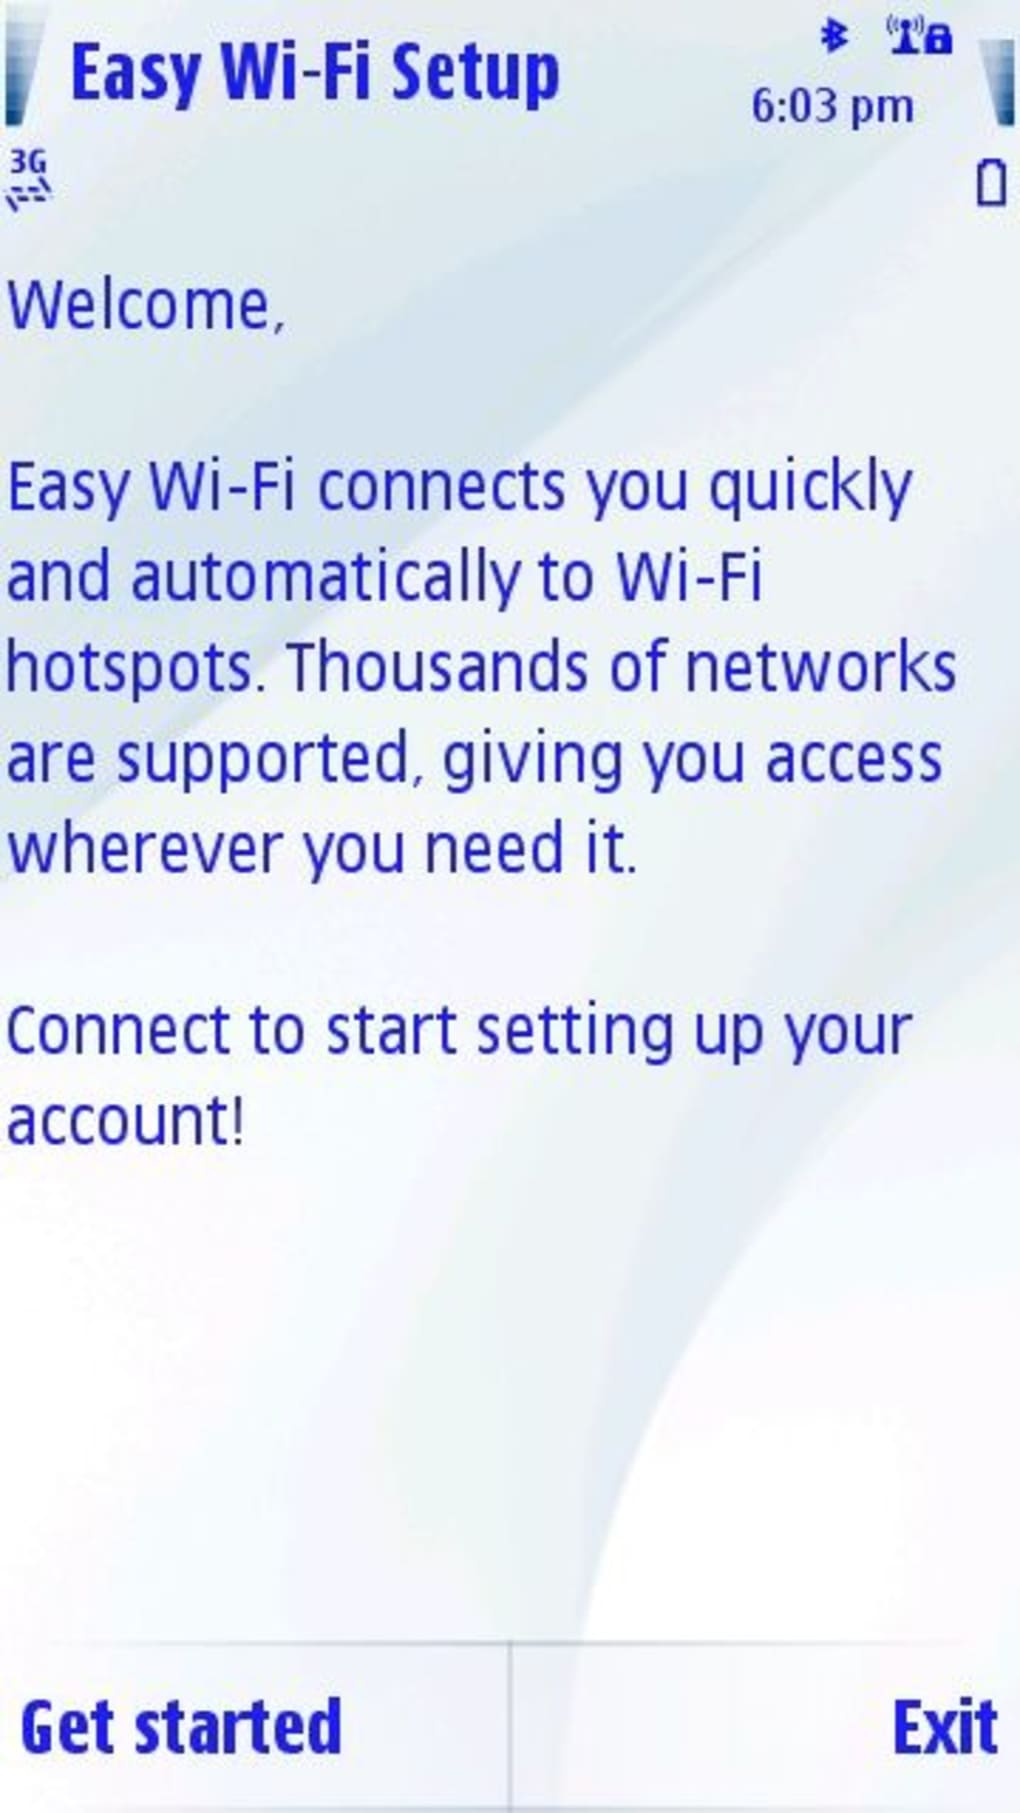 Download nokia wlan wizard symbian series 60 3rd edition apps.